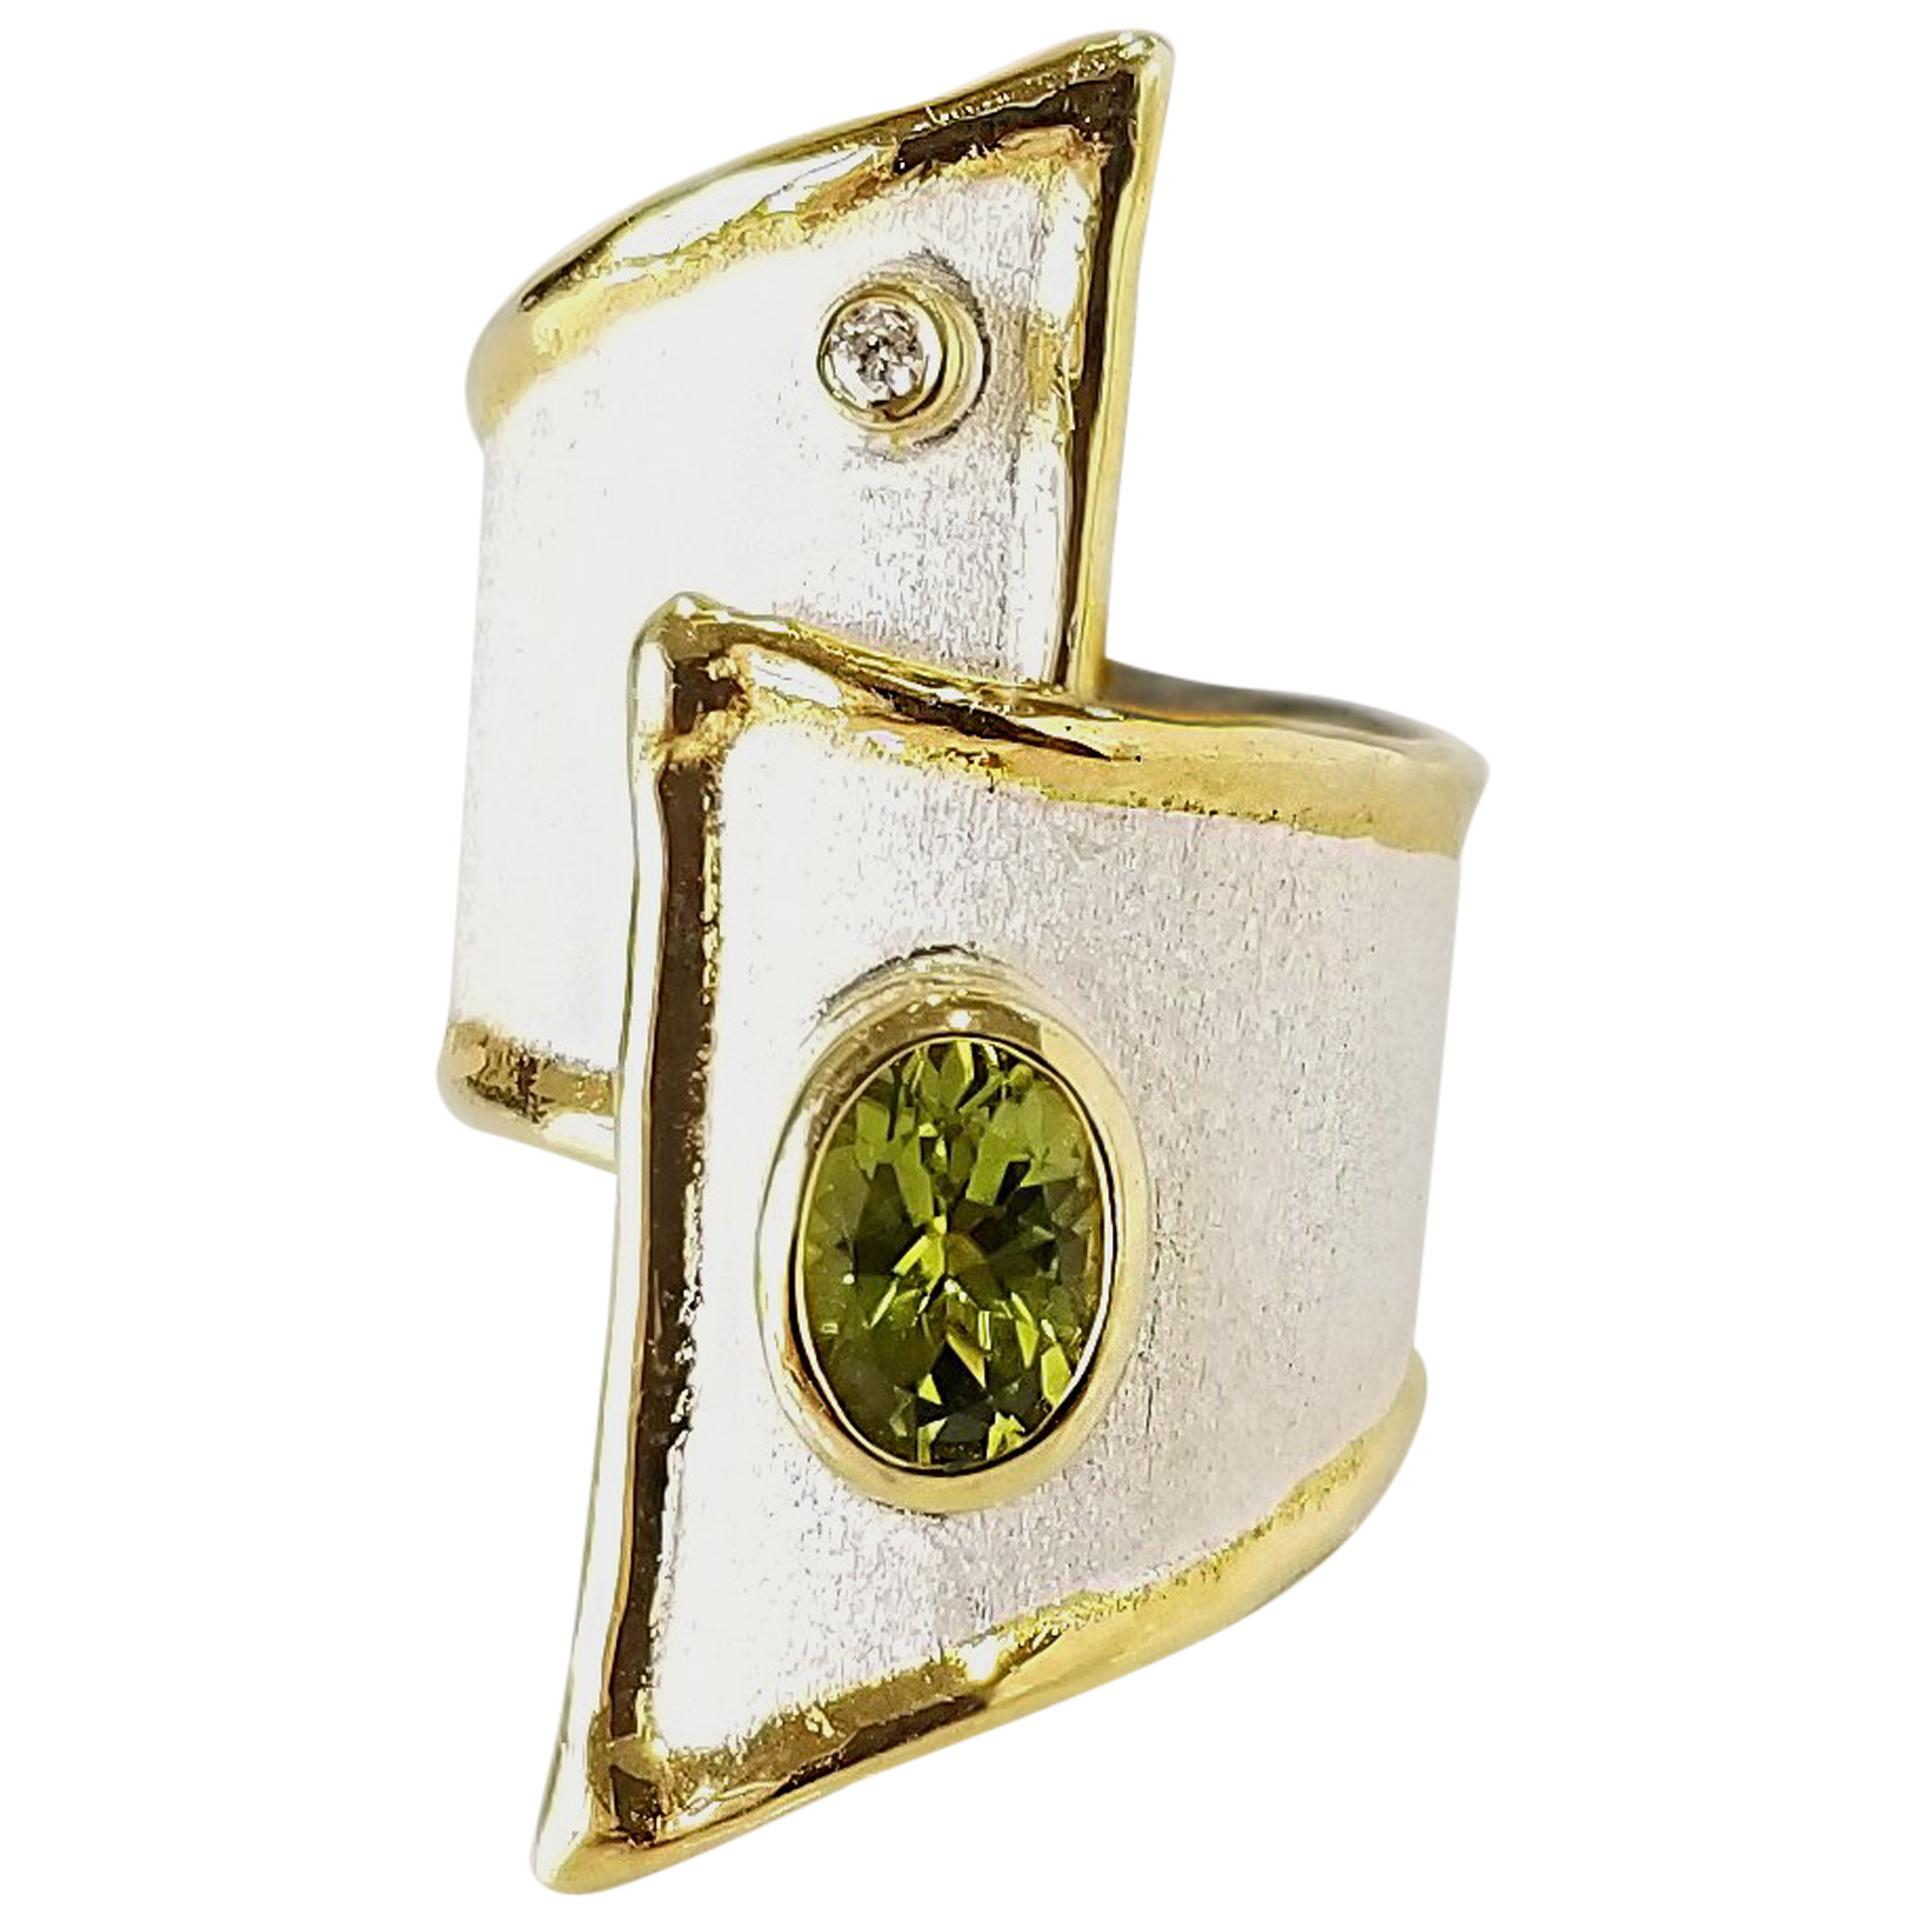 Yianni Creations 1.35 Carat Peridot Diamond Fine Silver 24 Karat Gold Ring